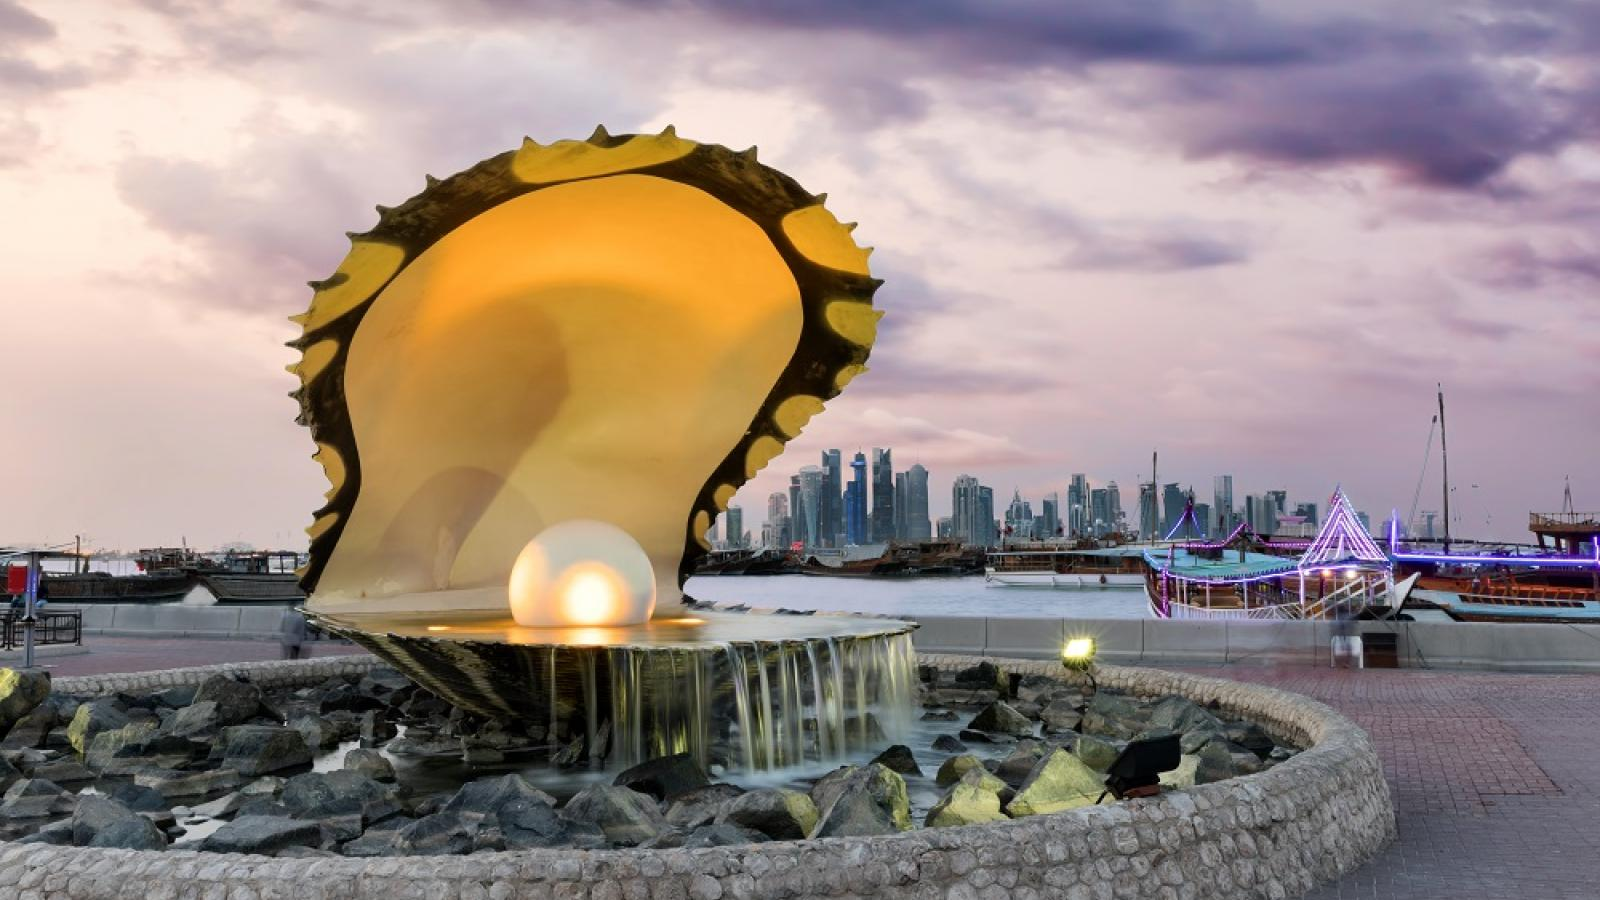 Qatar is the safest country globally as per the 2020 mid-year Crime Index